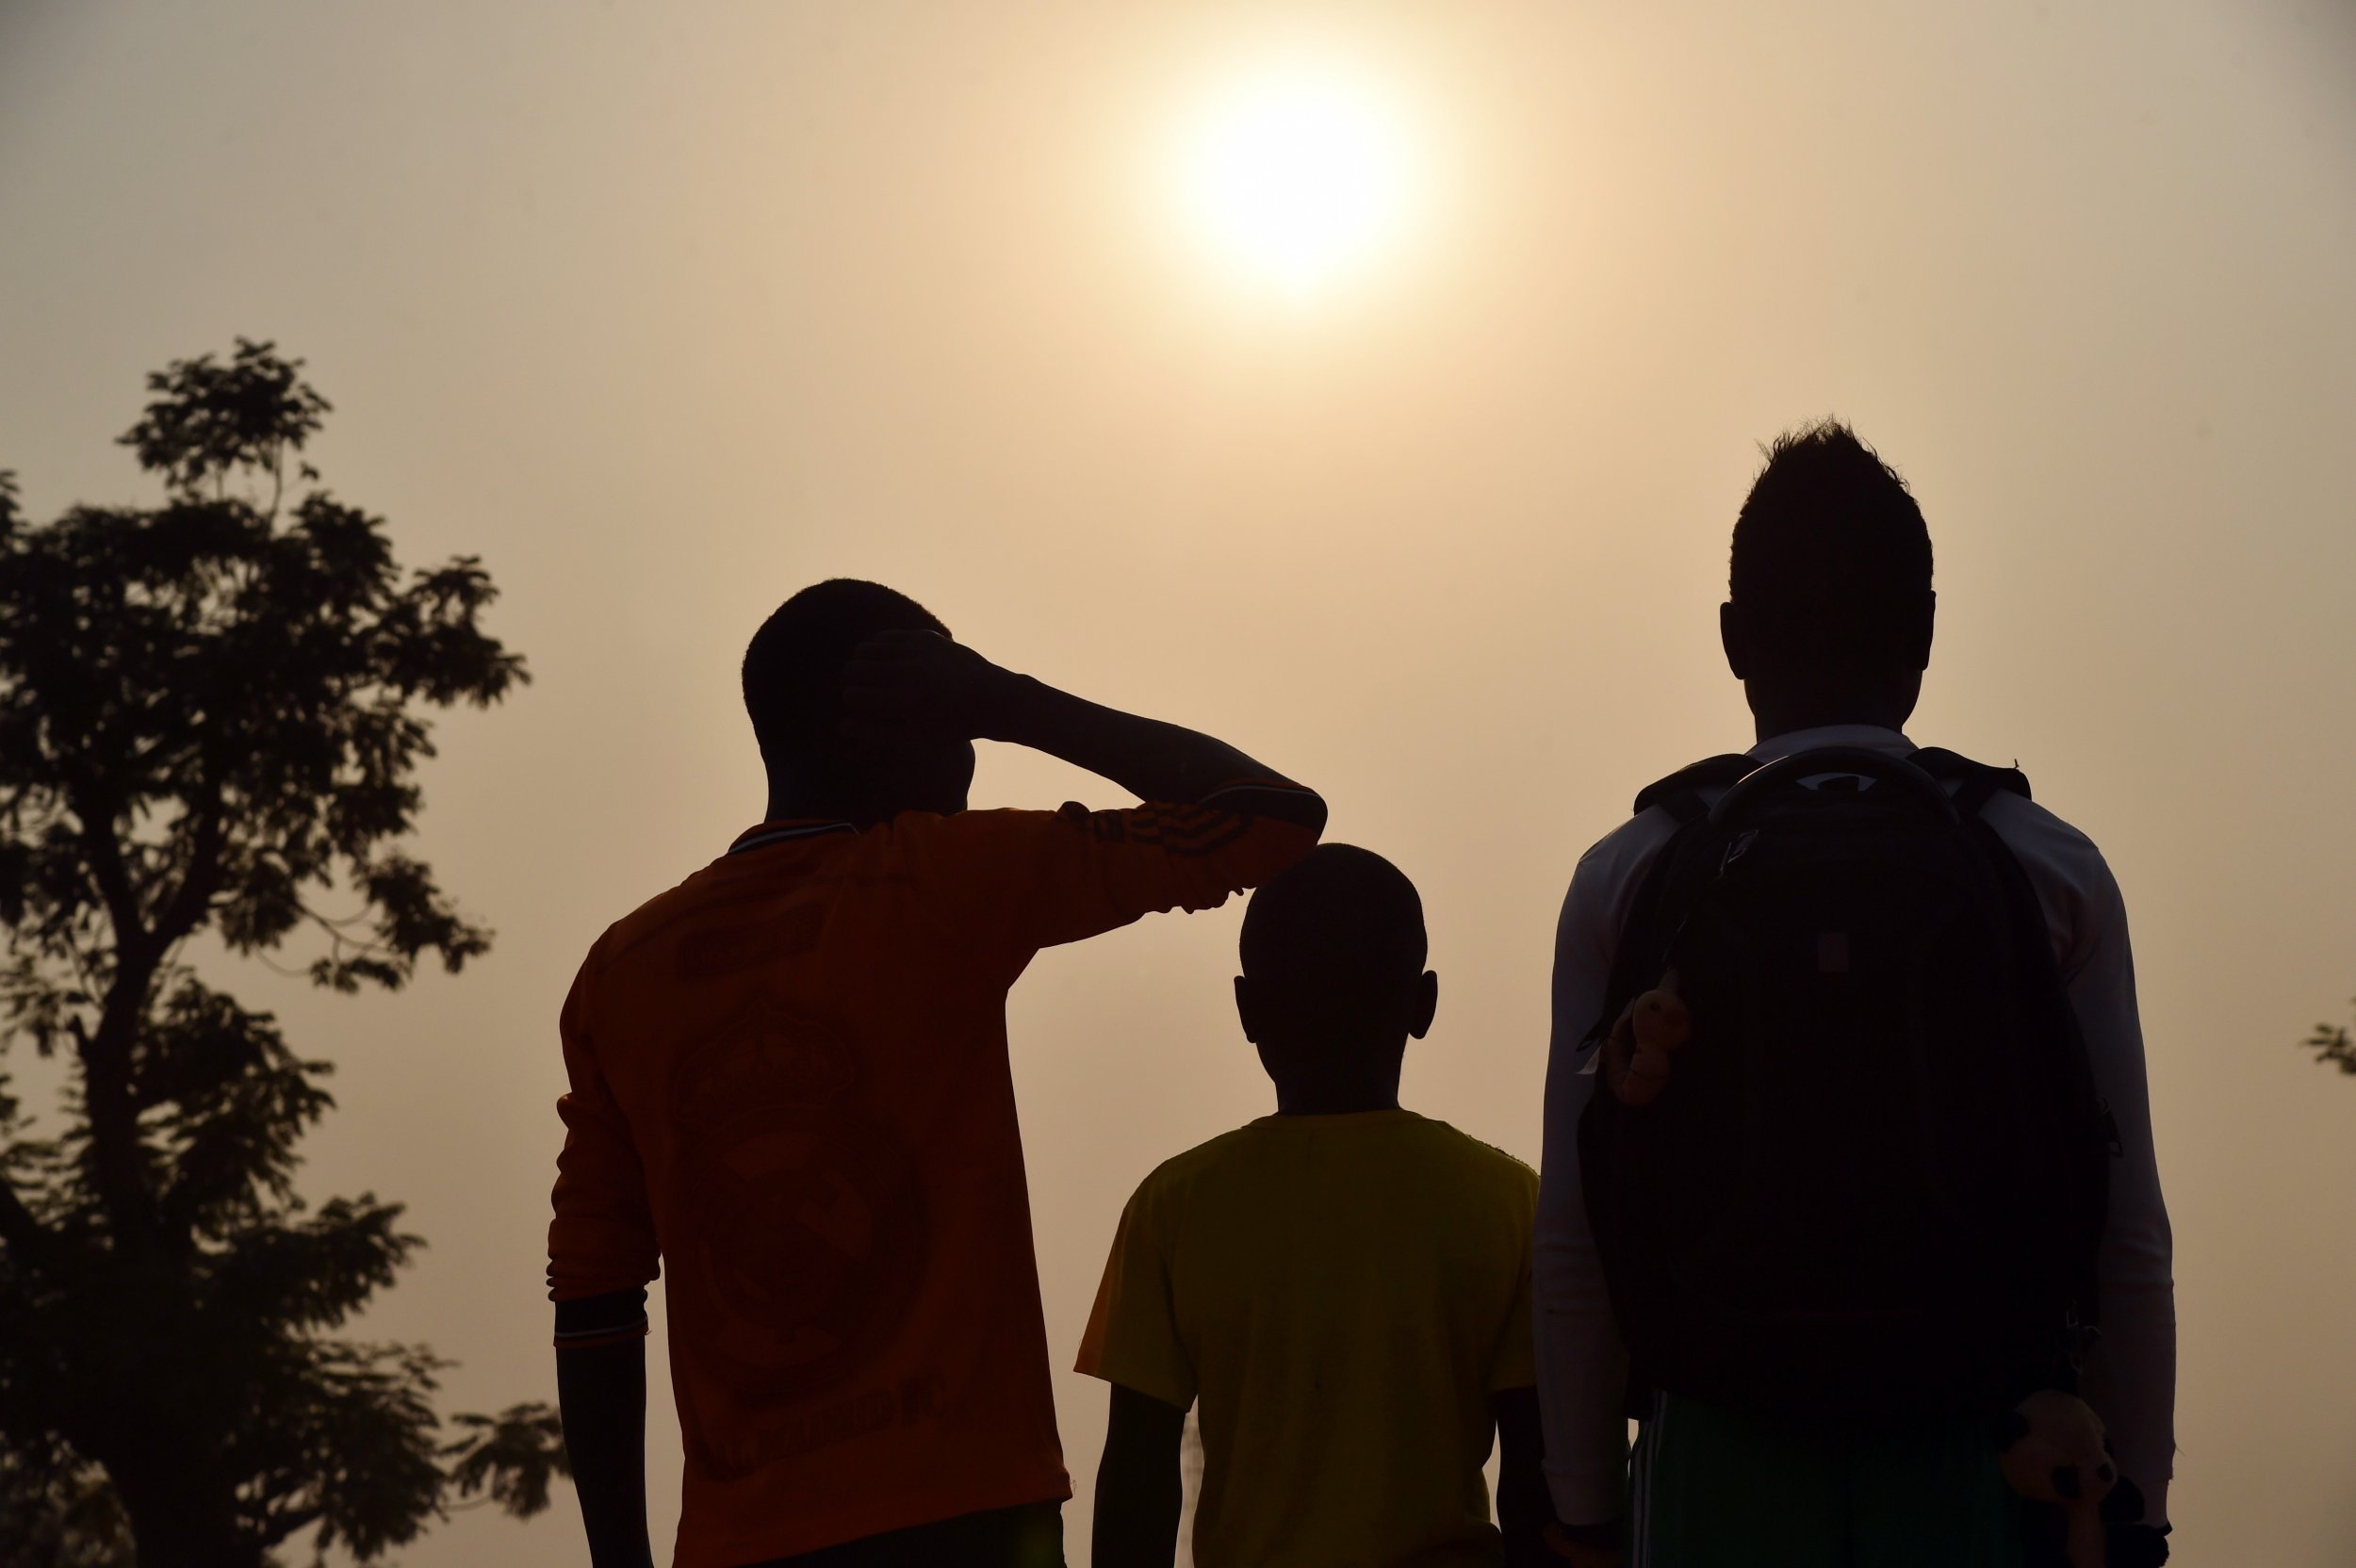 Three Central African children claiming to be victims or witnesses of sex abuse by international troops.